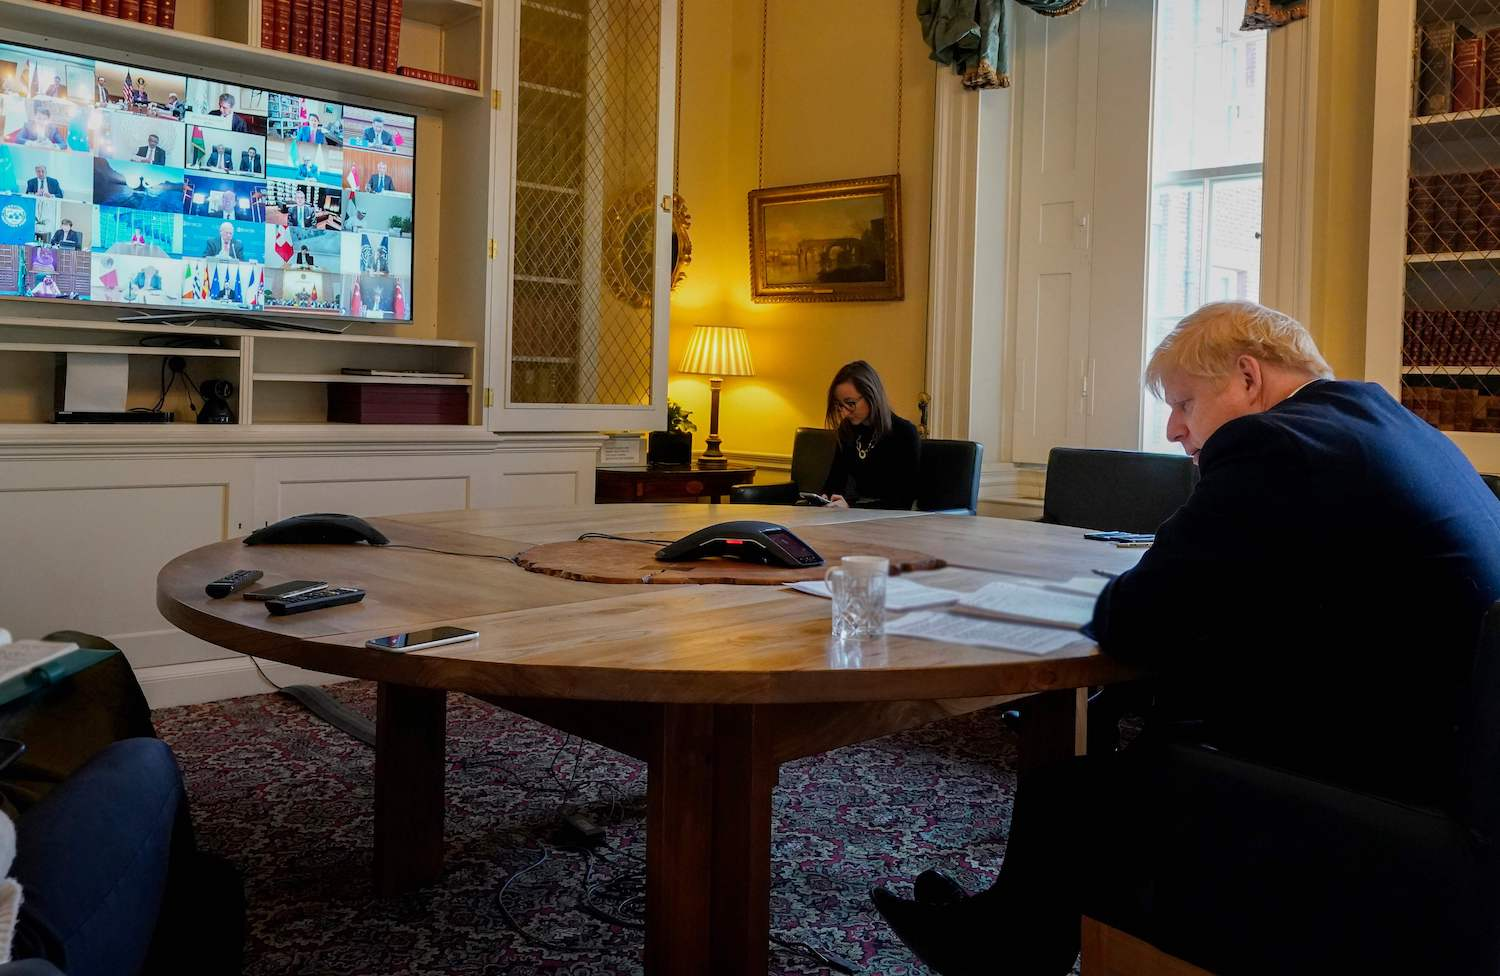 Prime Minister Boris Johnson participates in a video conference with other G20 leaders in the study of 10 Downing Street in London on Thursday. (Handout photo via AFP)